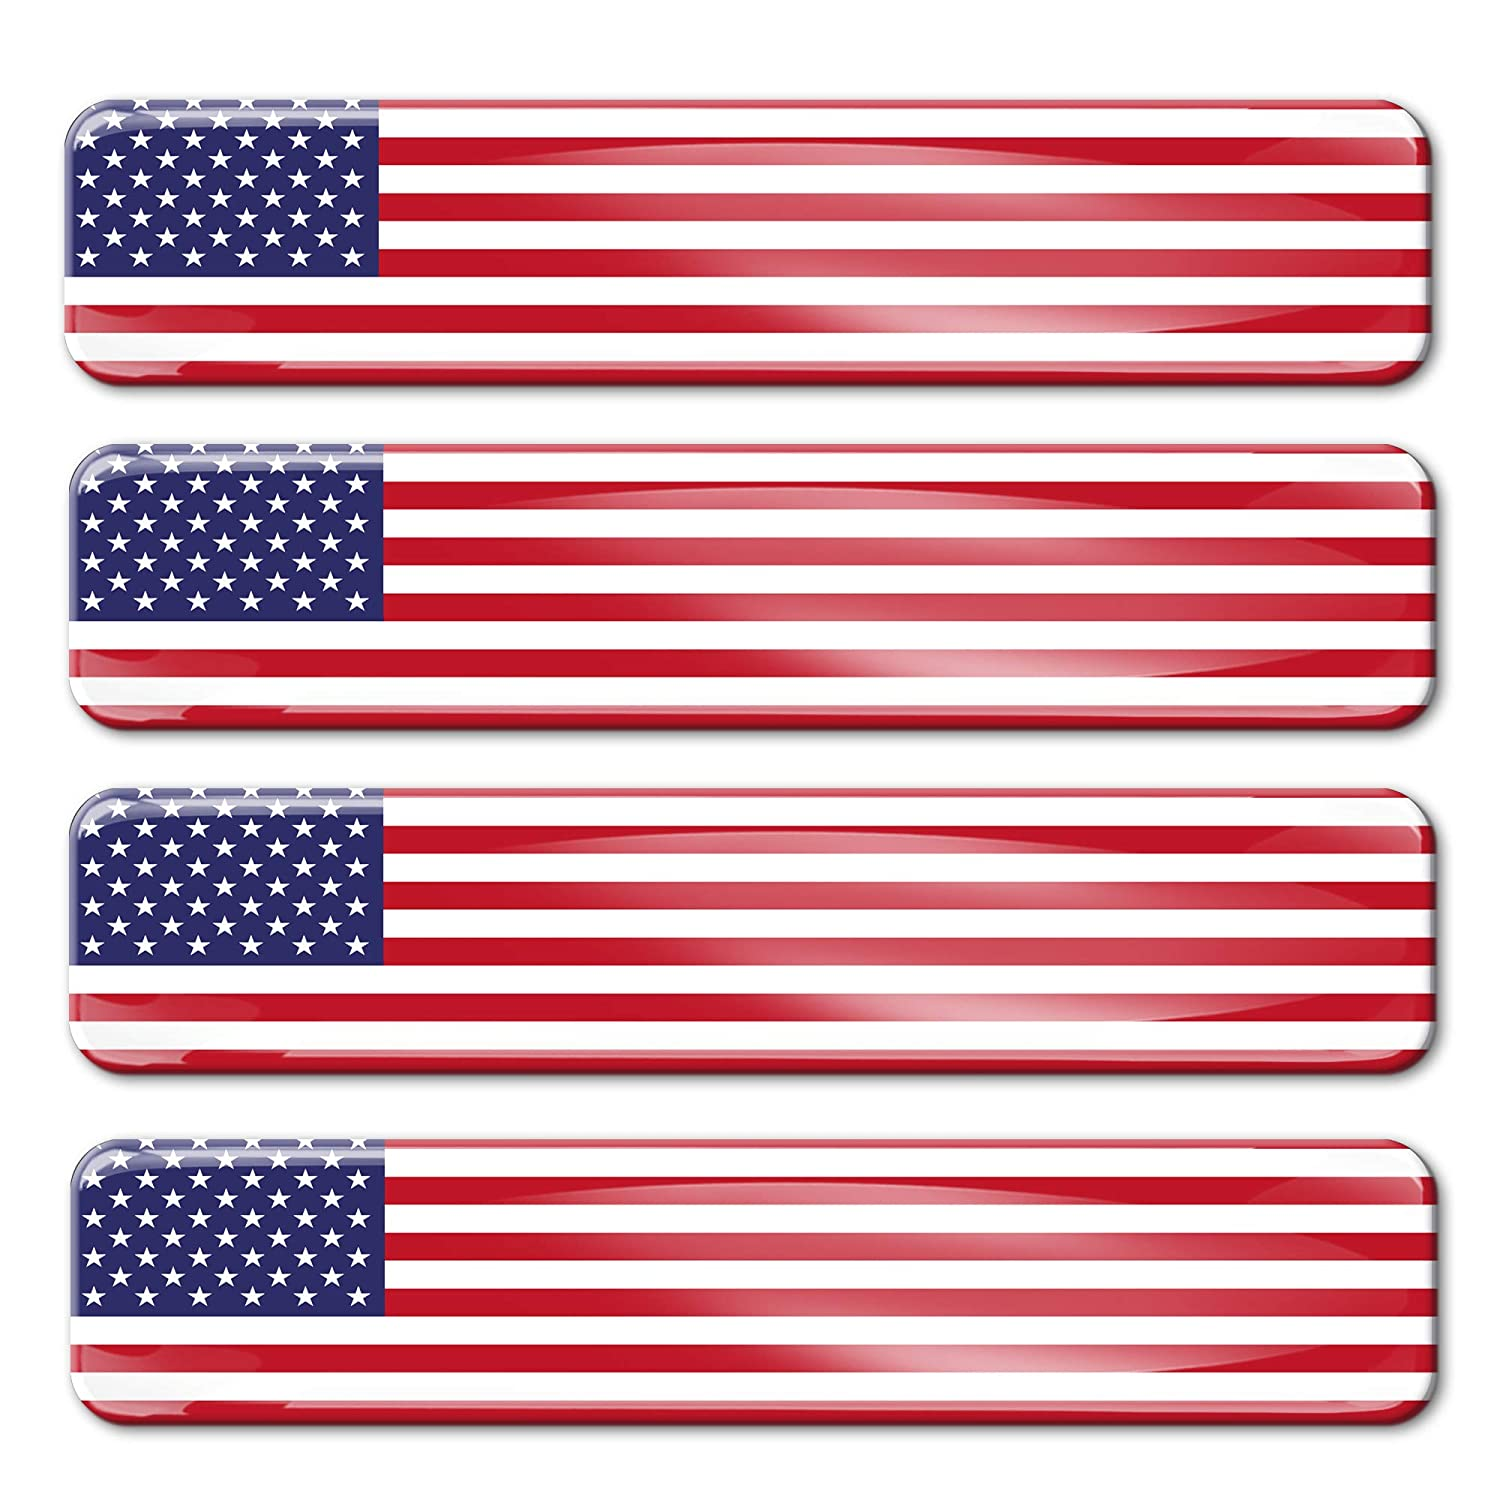 4 x Adesivi Resinati 3D Gel Stickers Divertente Bandiera Stati Uniti USA United States Of America Per Auto Moto Finestr/ìno Porta Casco Scooter Skateboard Bici PC Laptop Tablet Tuning F 27